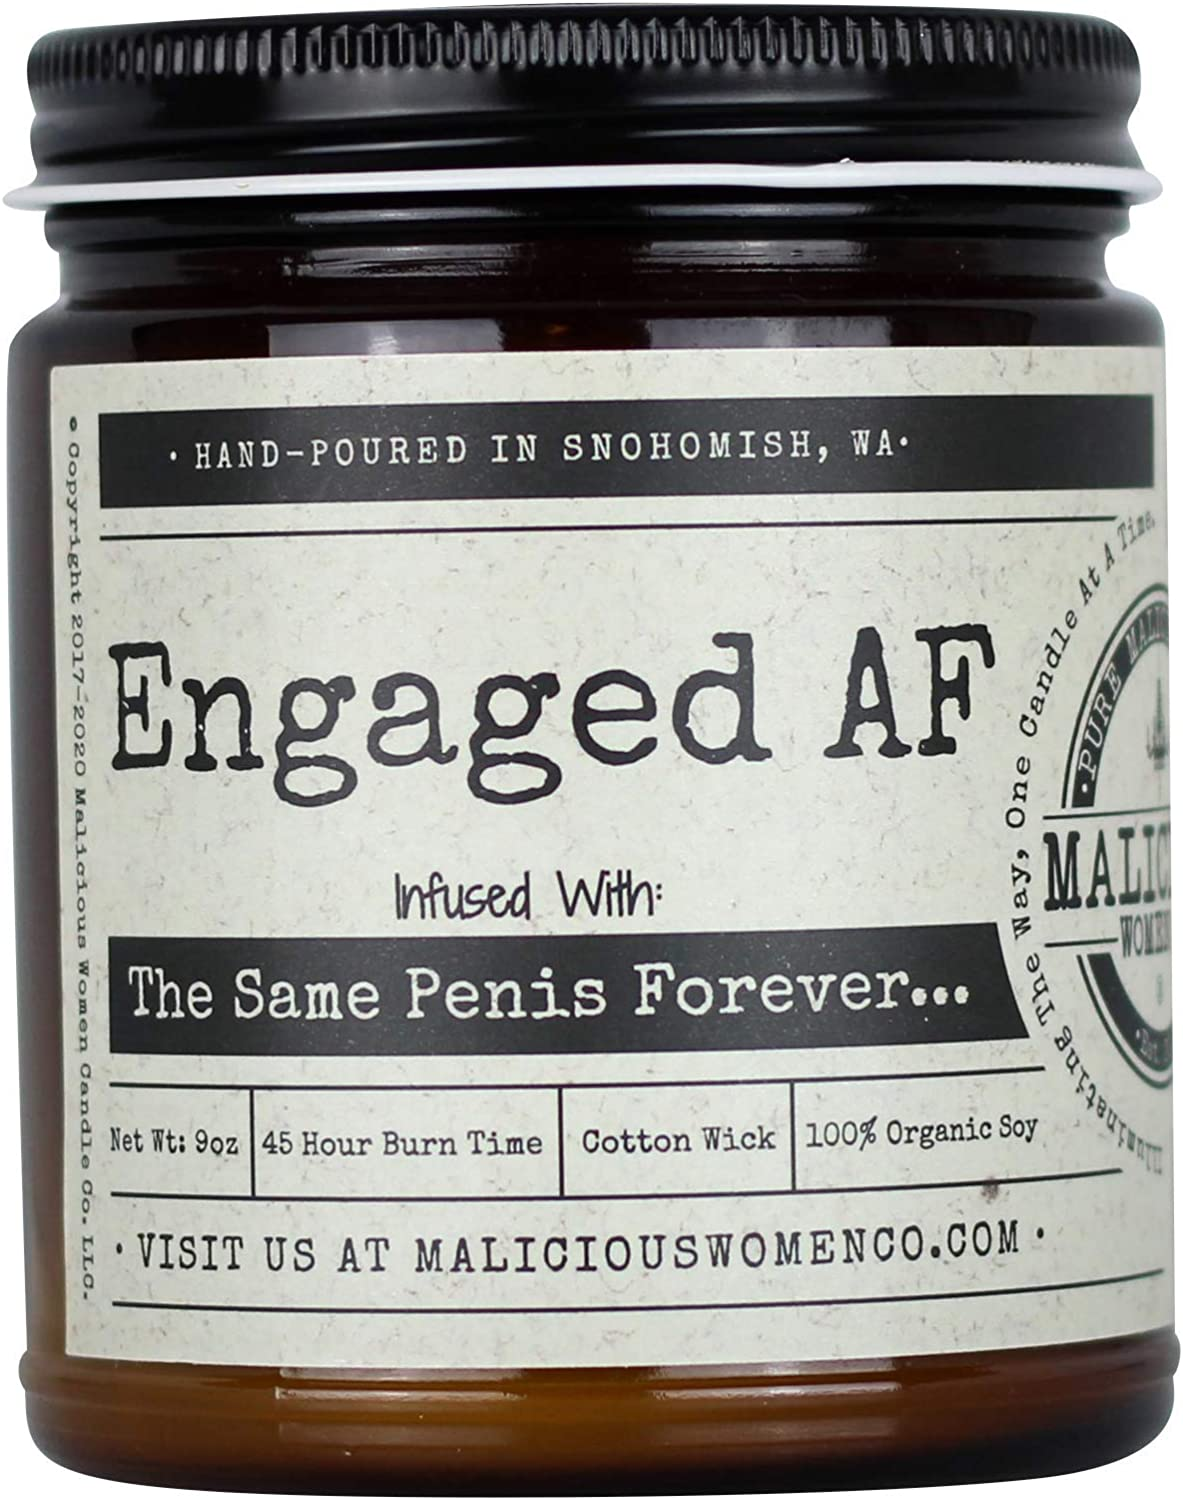 Malicious Women Candle Co - Engaged AF, Pink Champagne (Raspberry & Champagne) Infused with The Same Penis Forever, All-Natural Organic Soy Candle, 9 oz